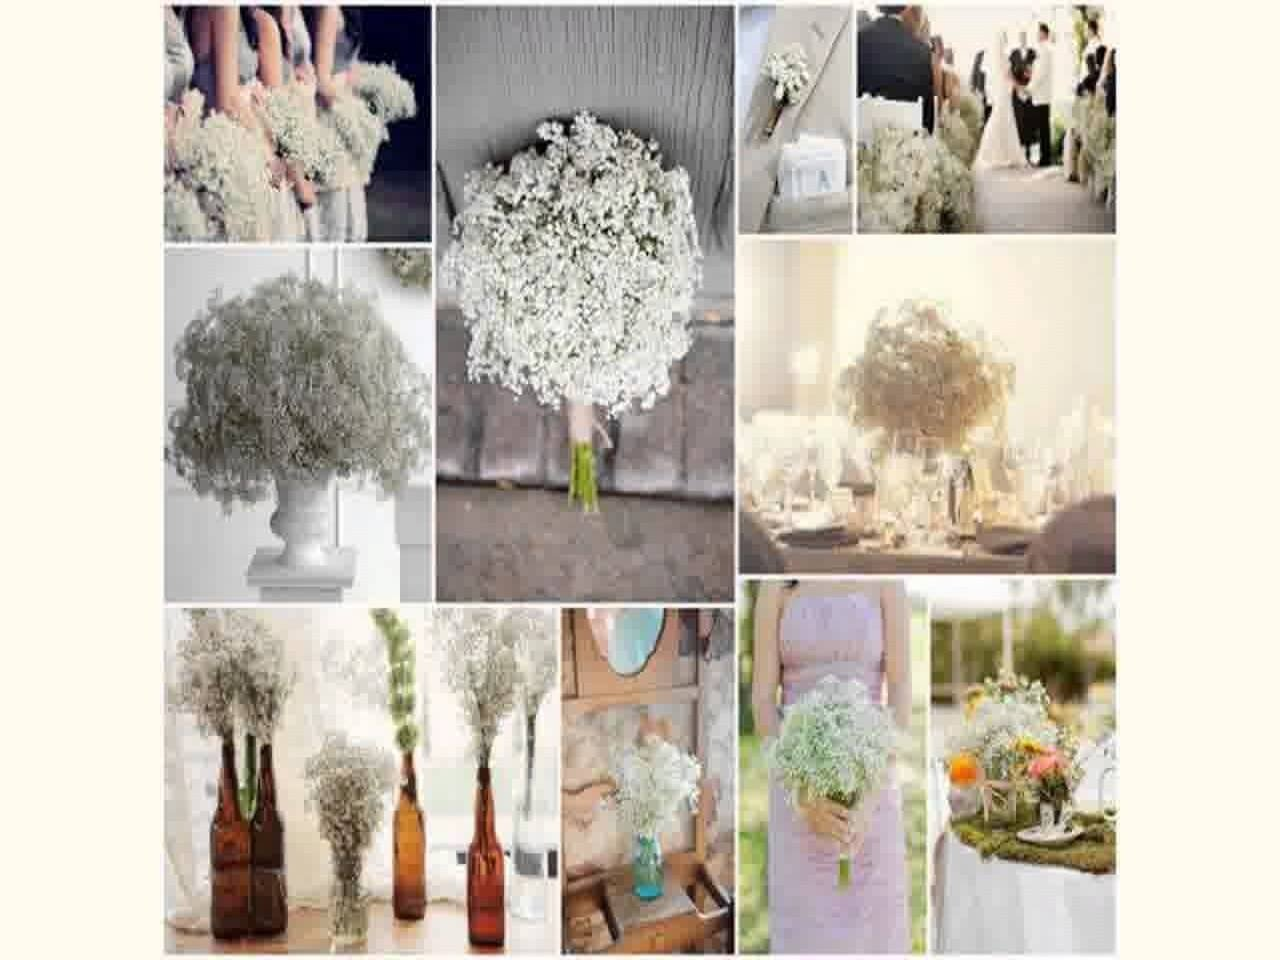 10 Most Recommended Diy Wedding Ideas On A Budget elegant wedding decoration ideas 2015 youtube 2020